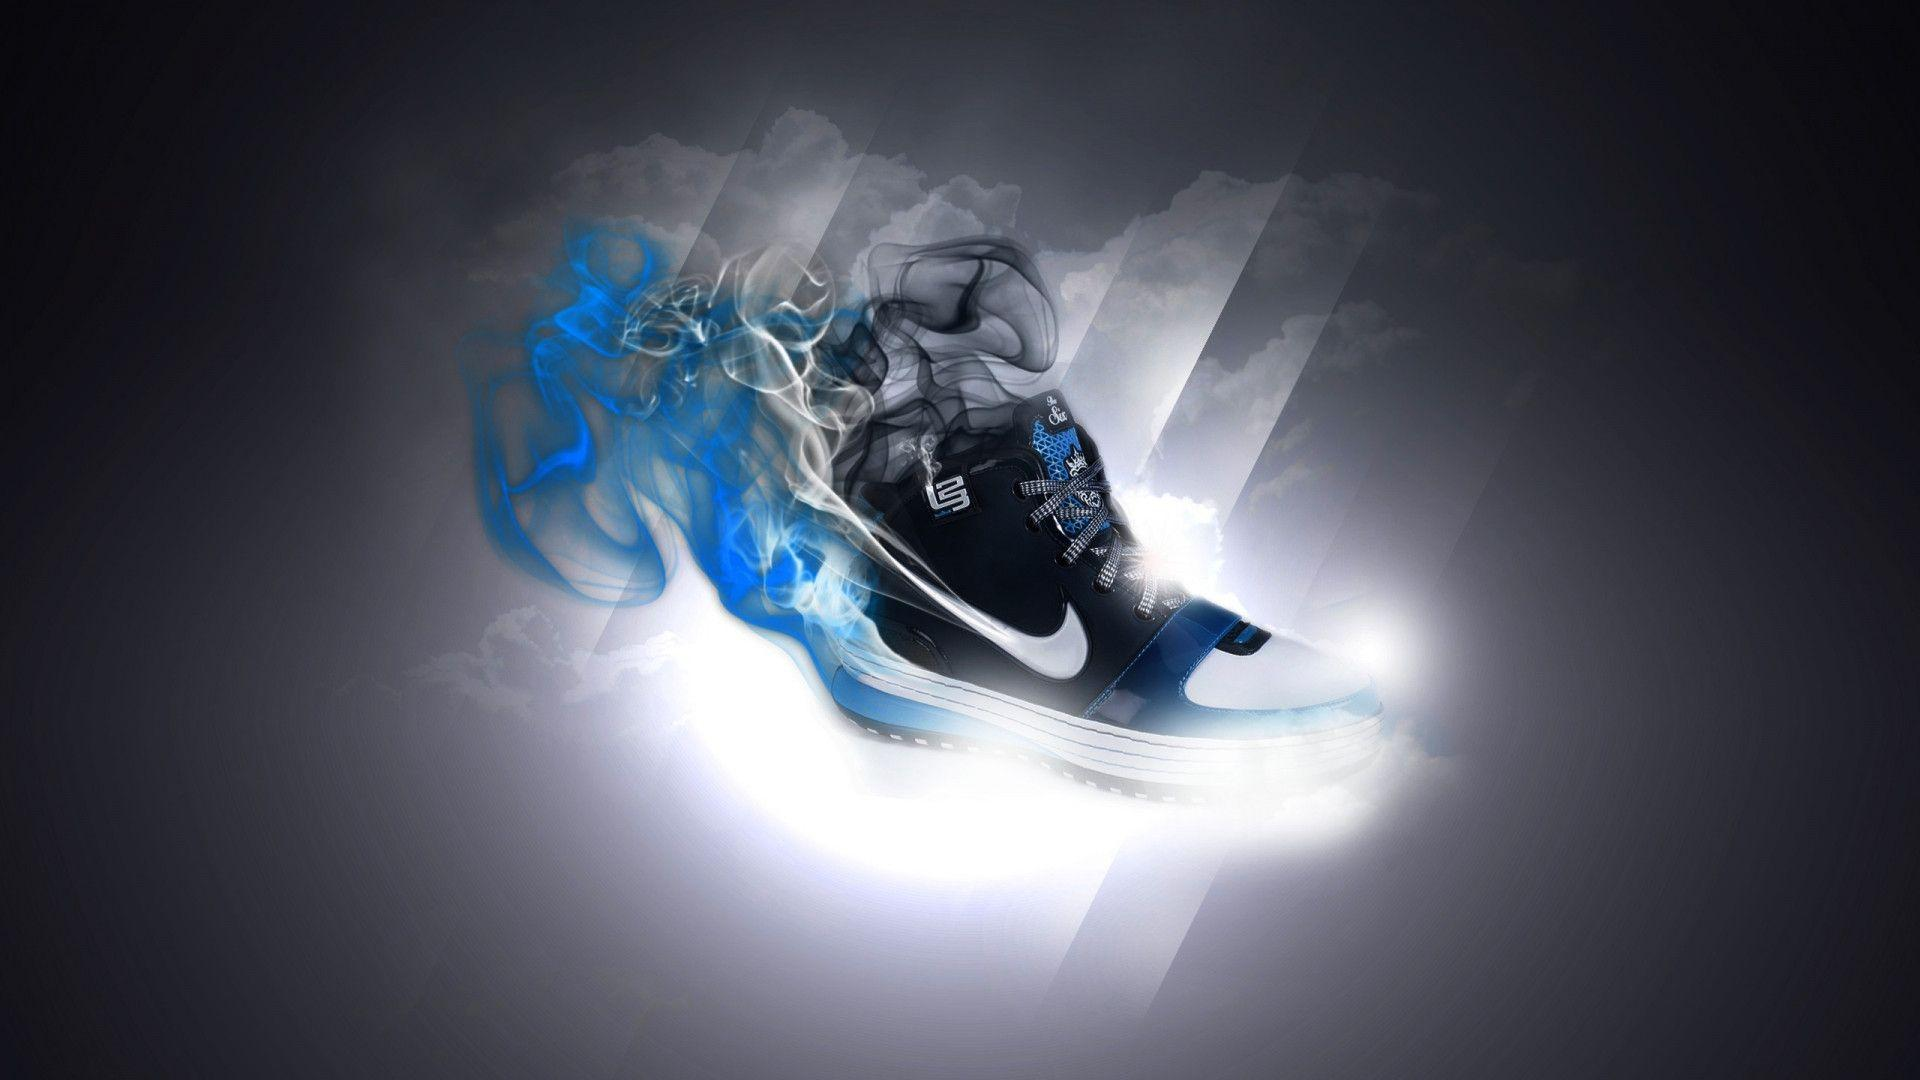 Hd wallpaper nike - Nike Shoes 3d Wallpapers Hd Wallpicshd